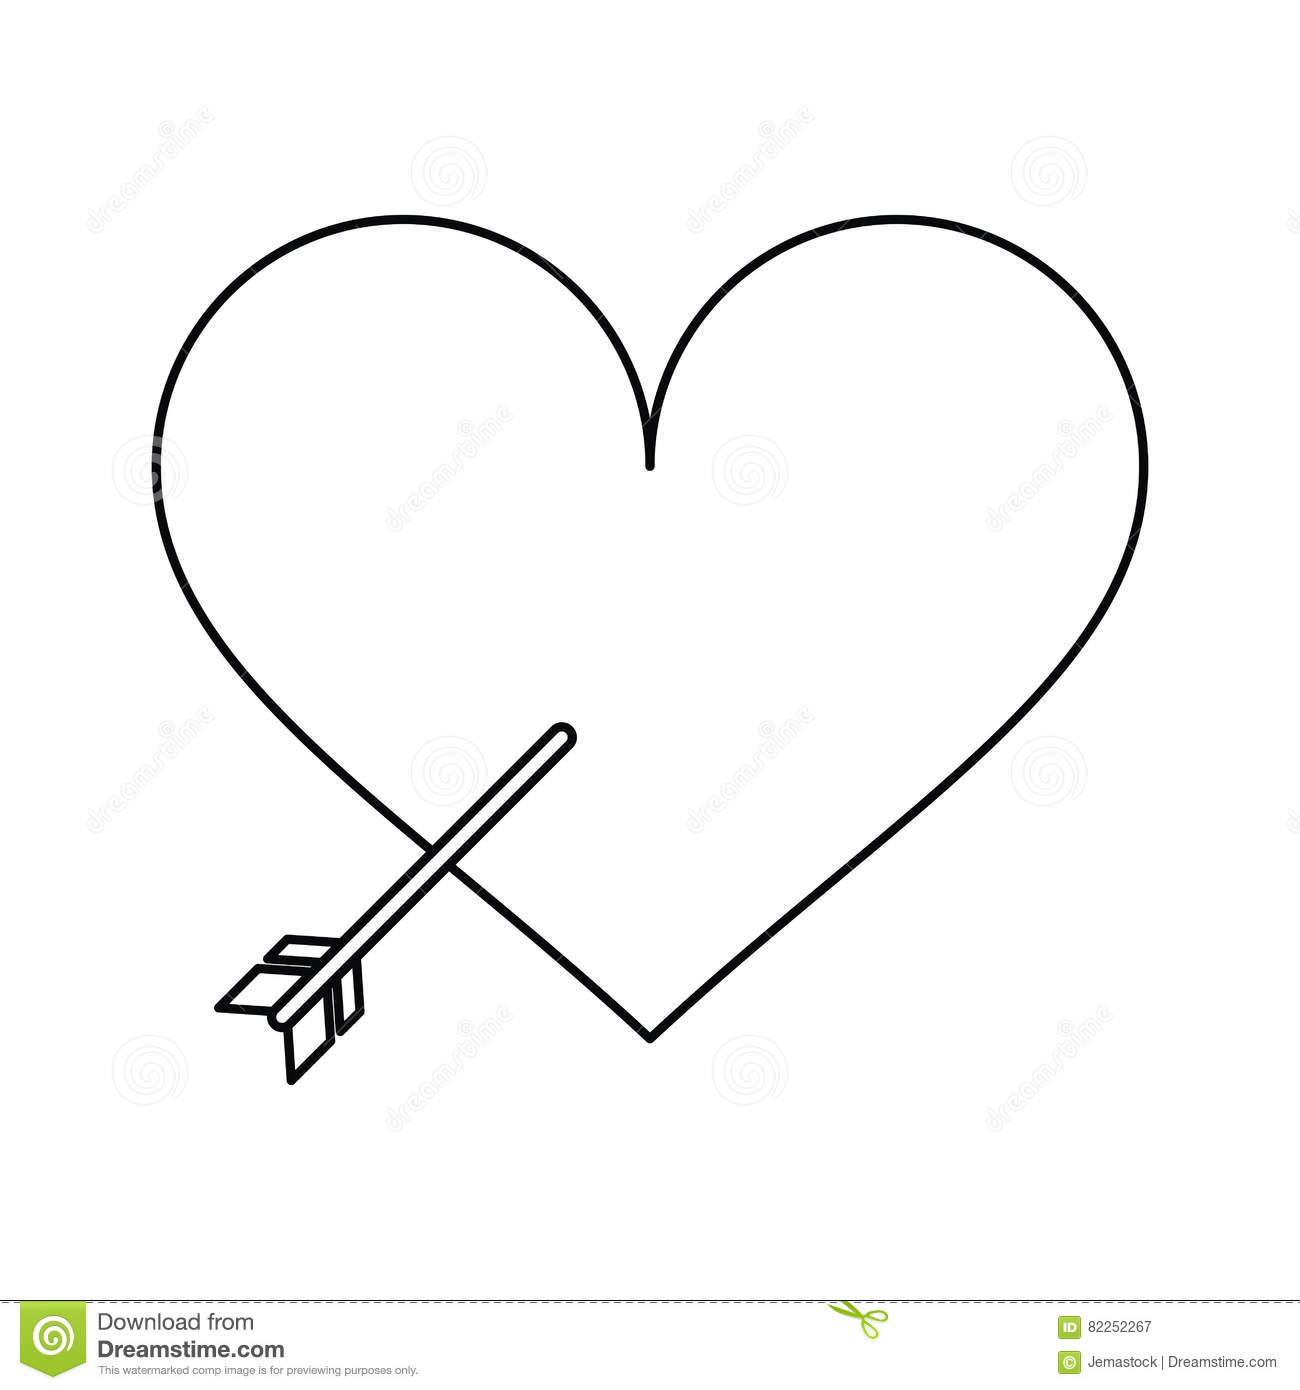 Heart with arrow love symbol outline stock vector illustration heart with arrow love symbol outline buycottarizona Image collections